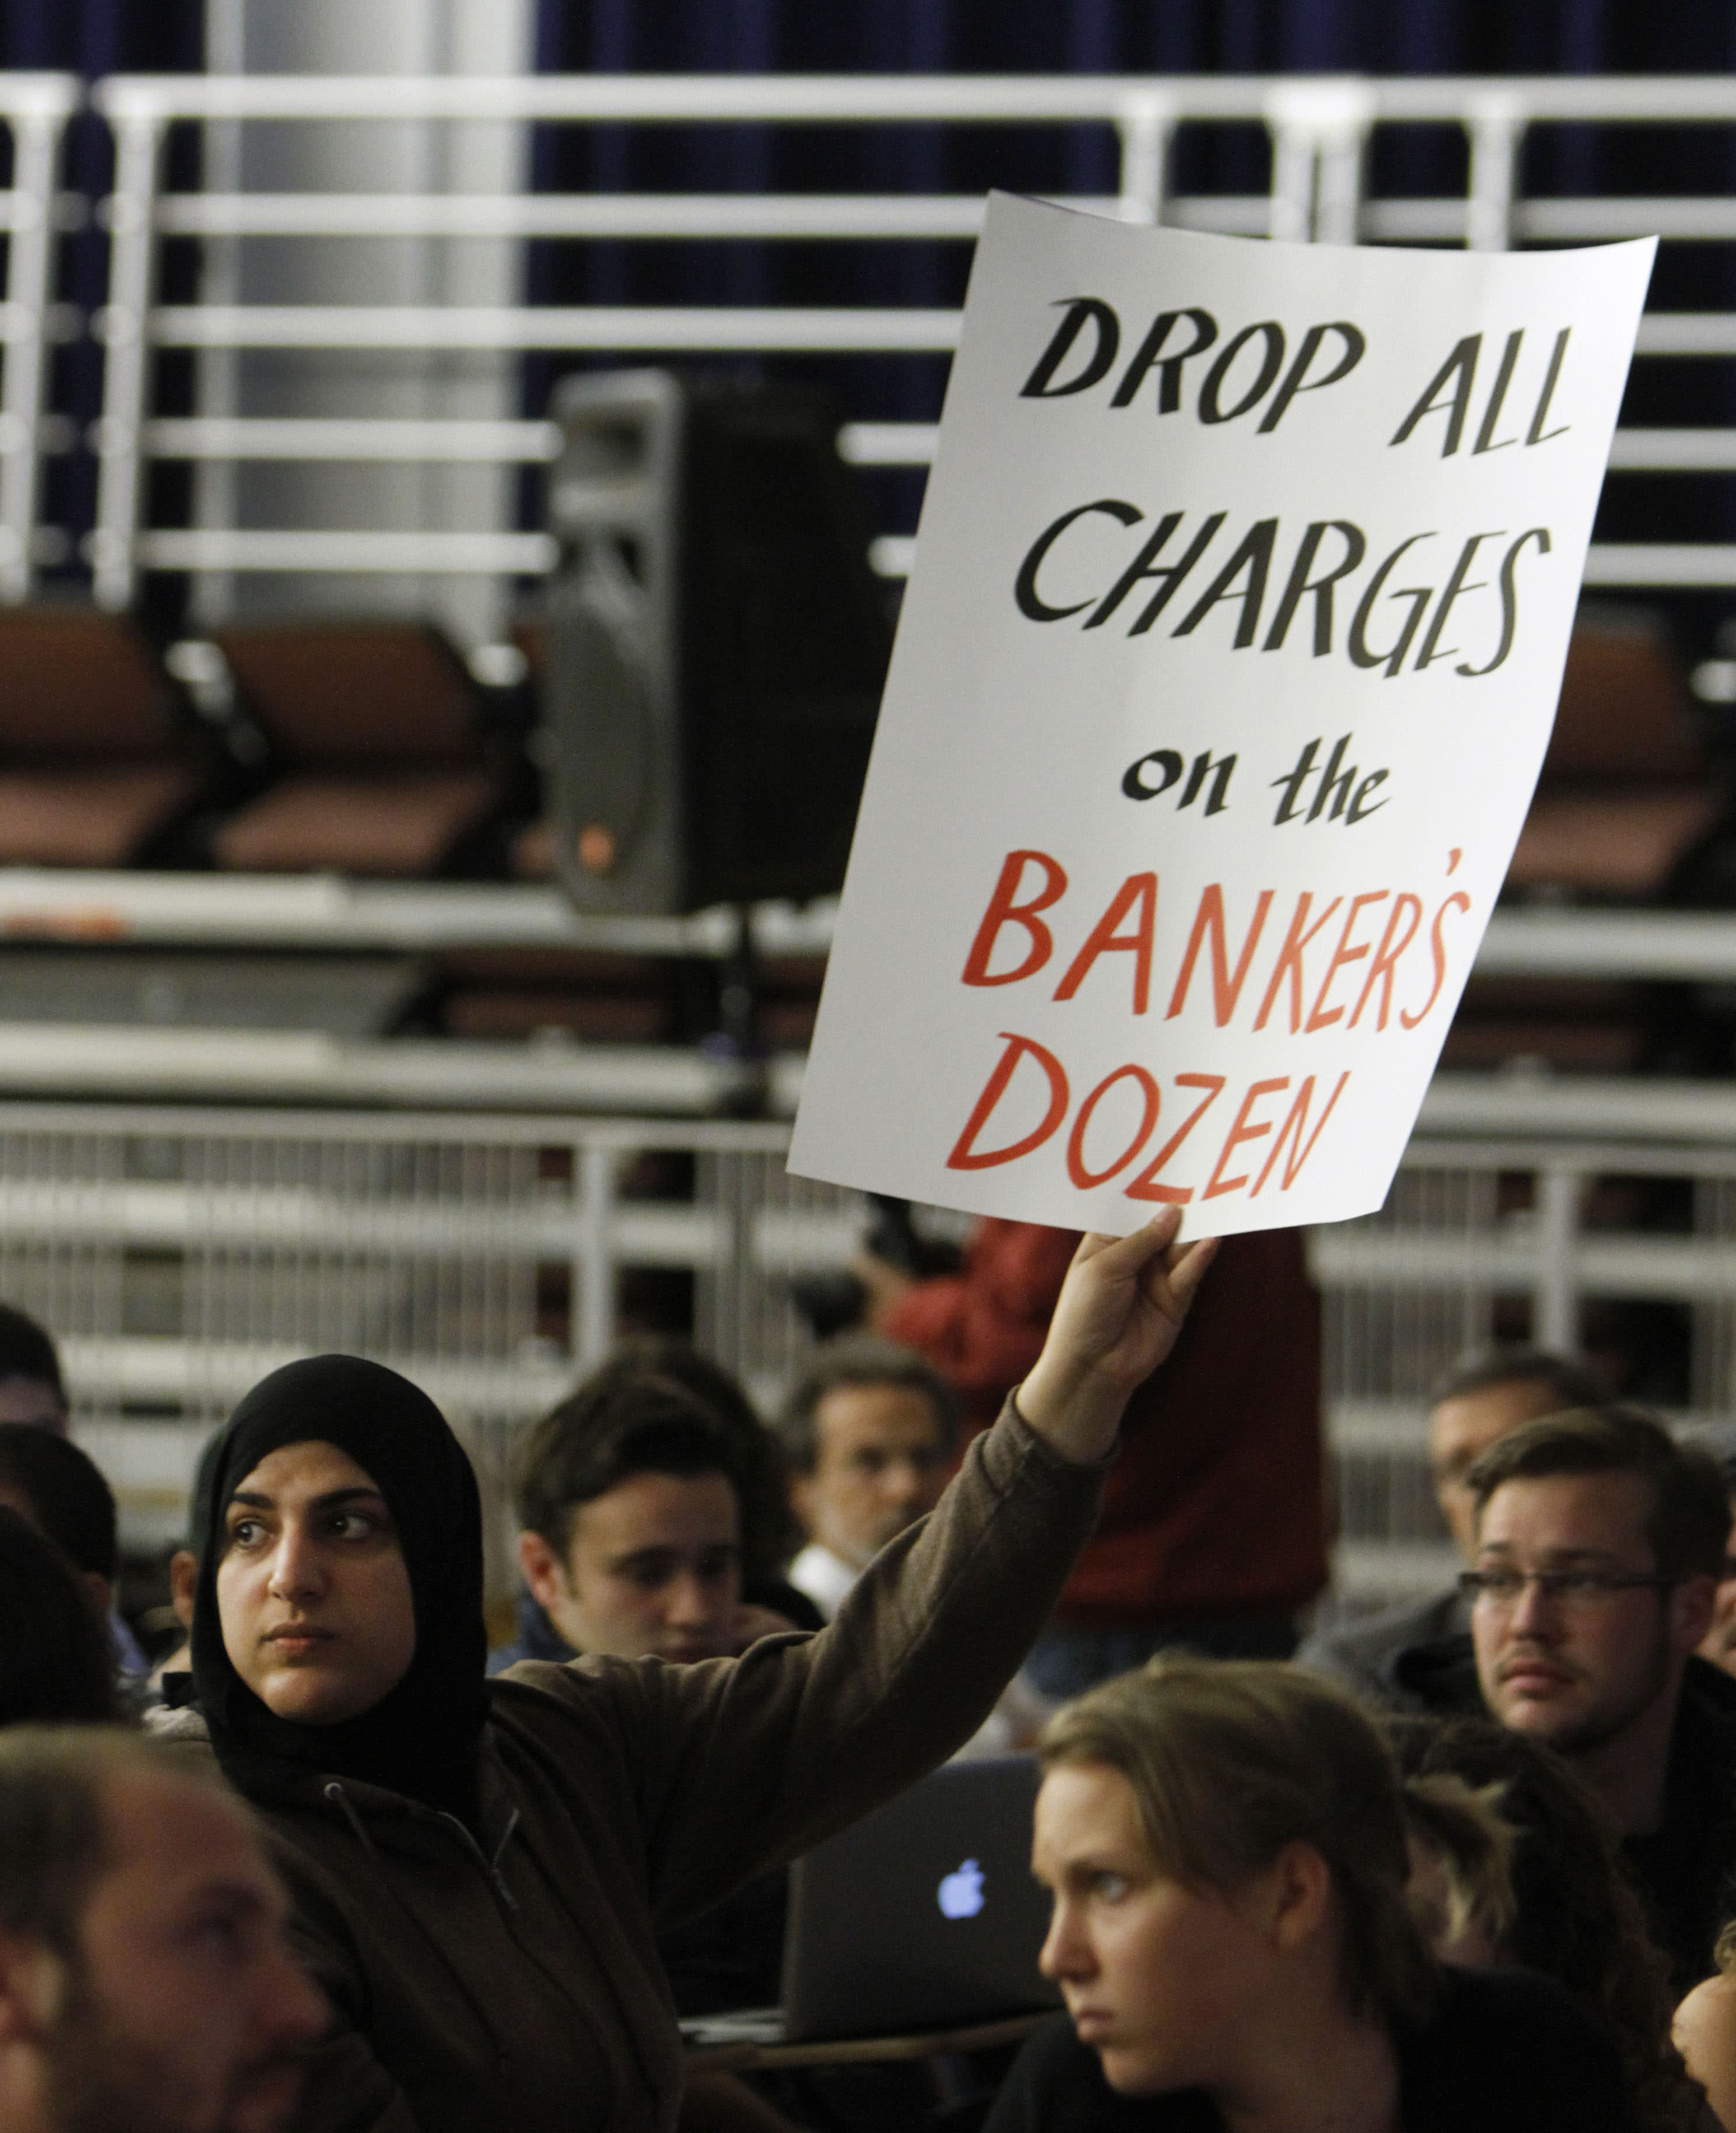 Fatima Sbeih, one of the students pepper sprayed by campus police officers at the University of California, Davis, last November, displays a sign during a town hall style meeting held at the school in Davis, Calif., Wednesday, April 11, 2012. The meeting has held to discuss the release of a report looking into the incident that prompted a national outrage. (AP Photo/Rich Pedroncelli)